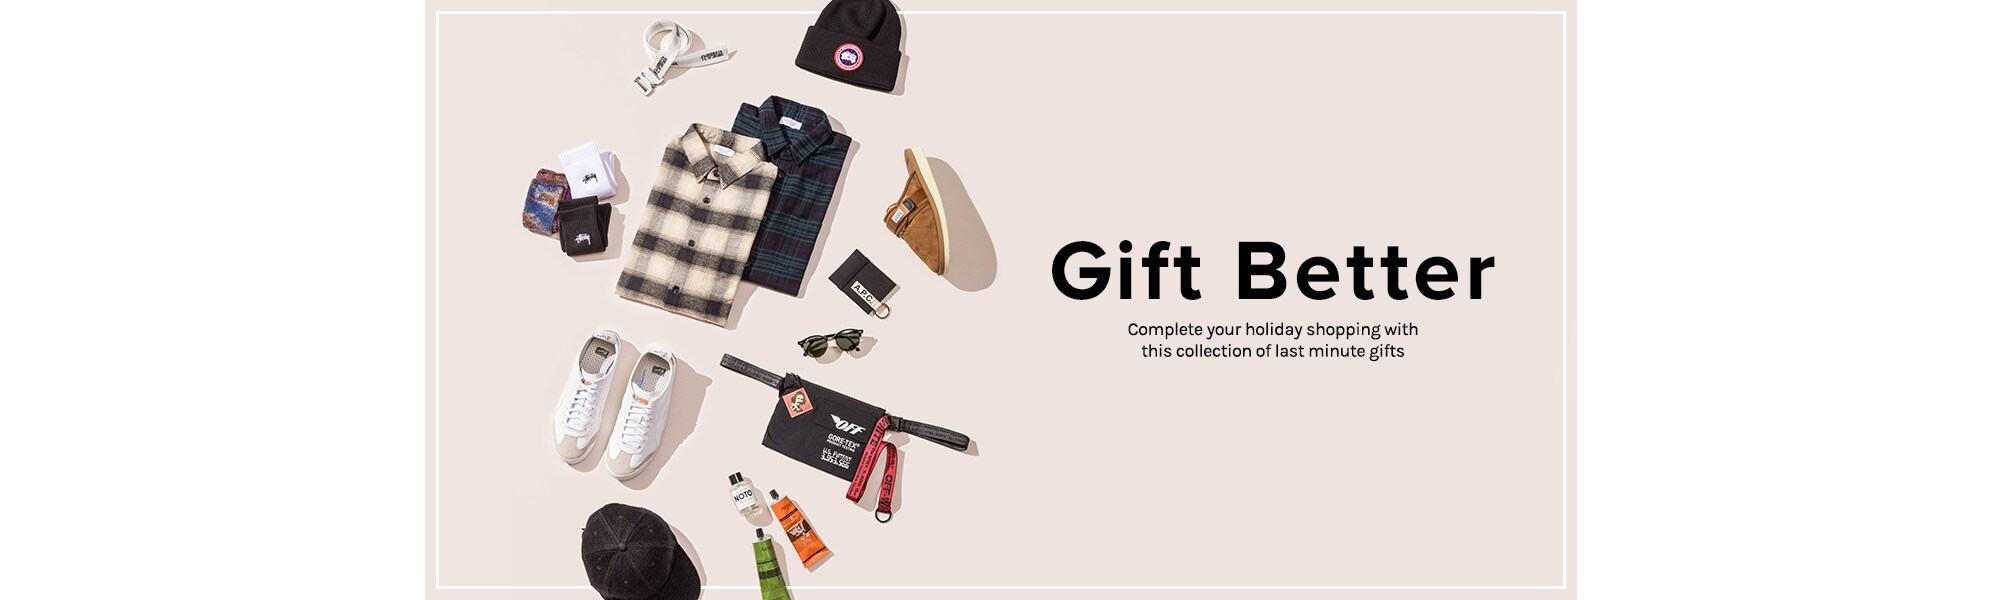 Gift Better. Complete your holiday shopping with this collection of last minute gifts. Shop Now.